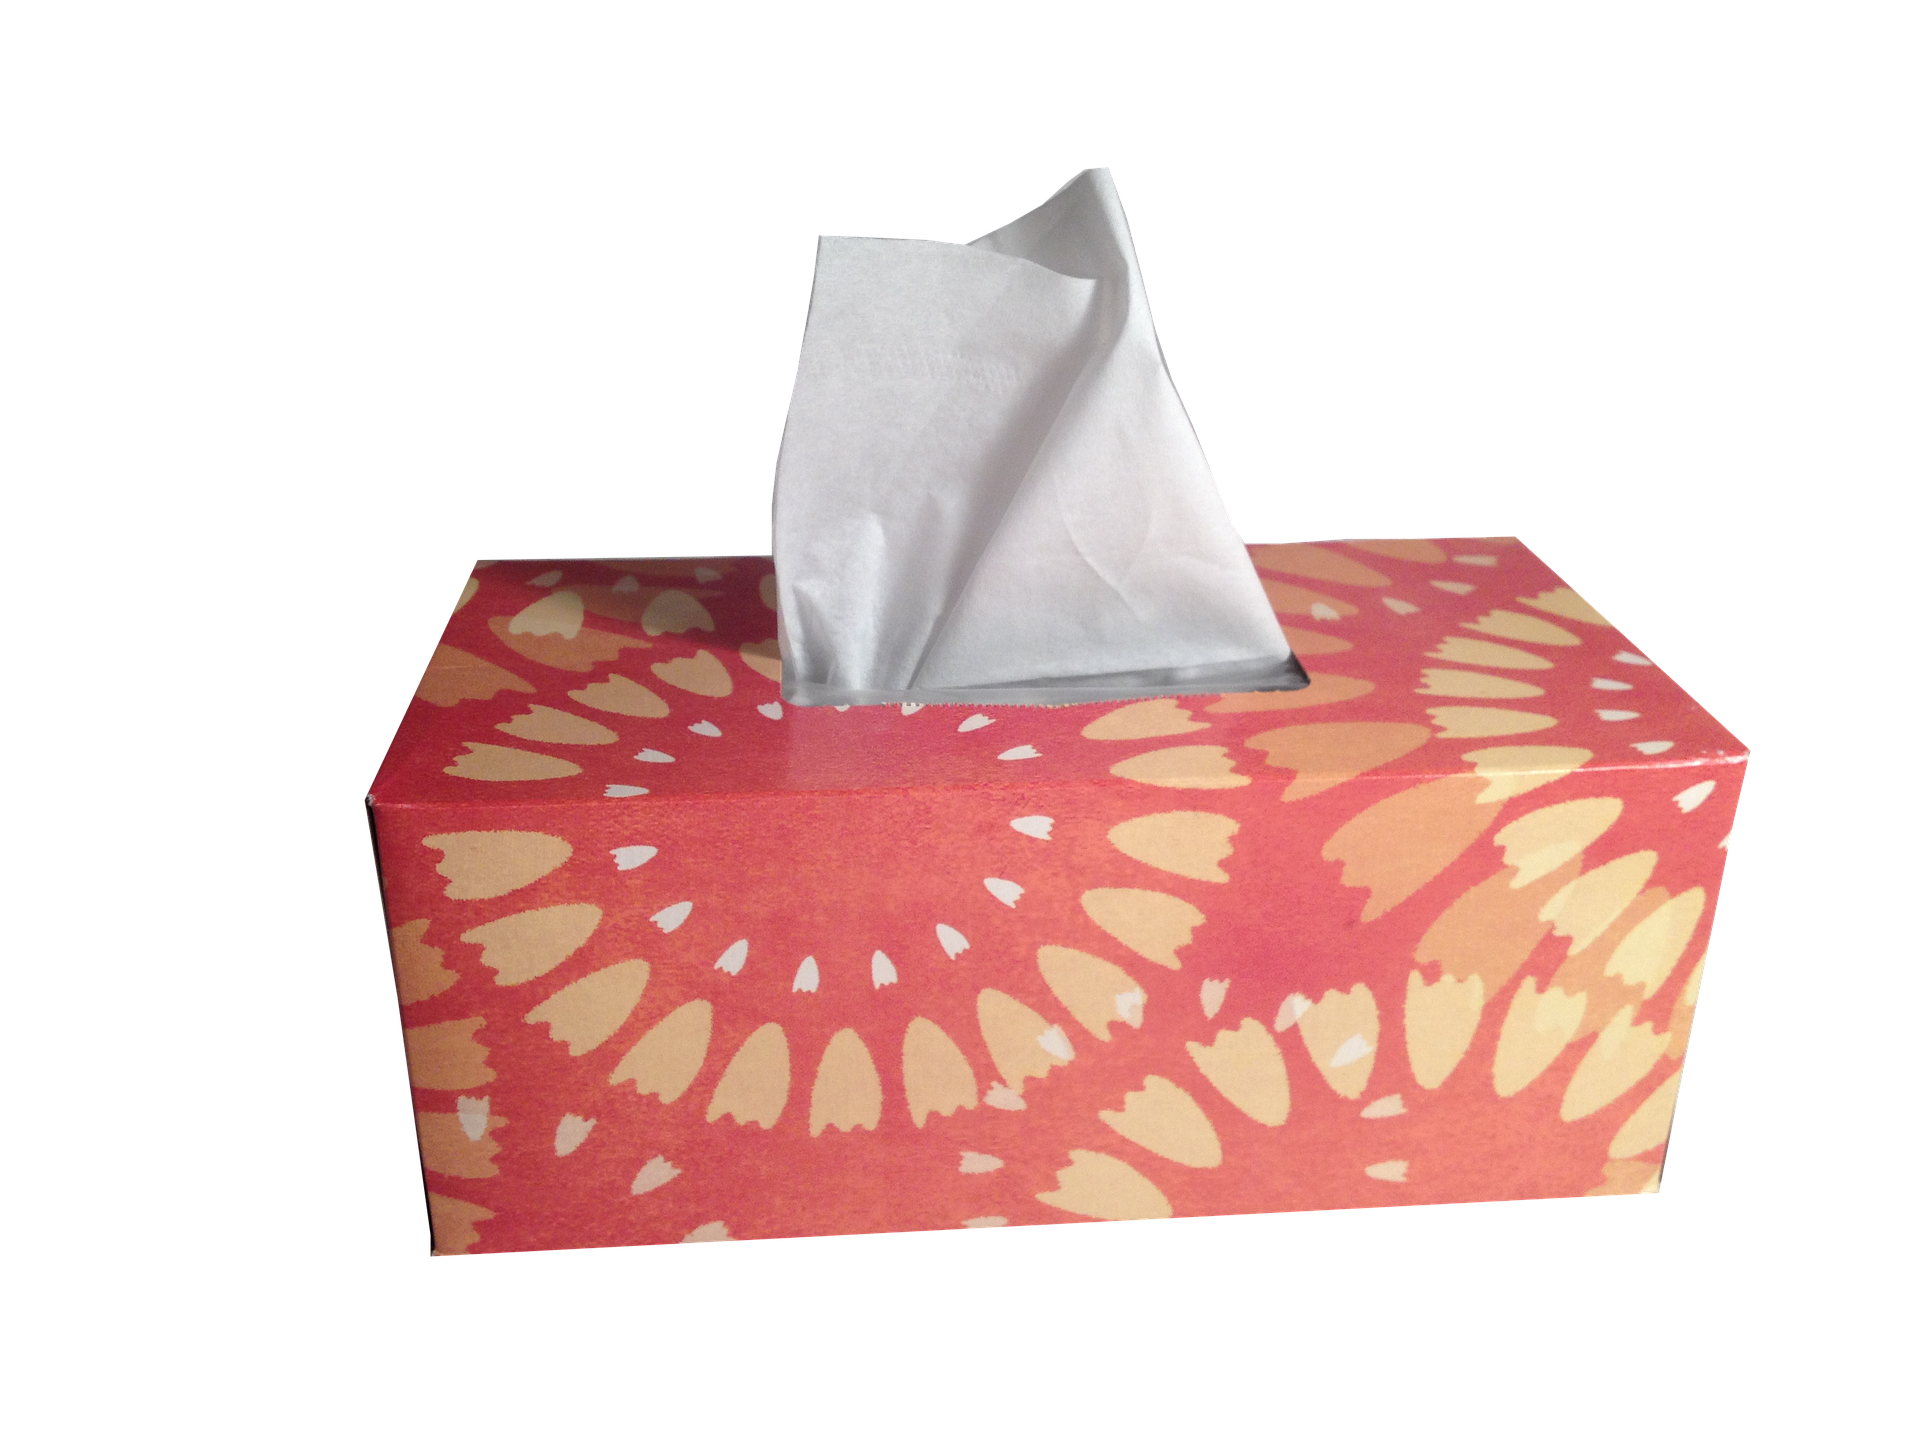 Tissues for my issues